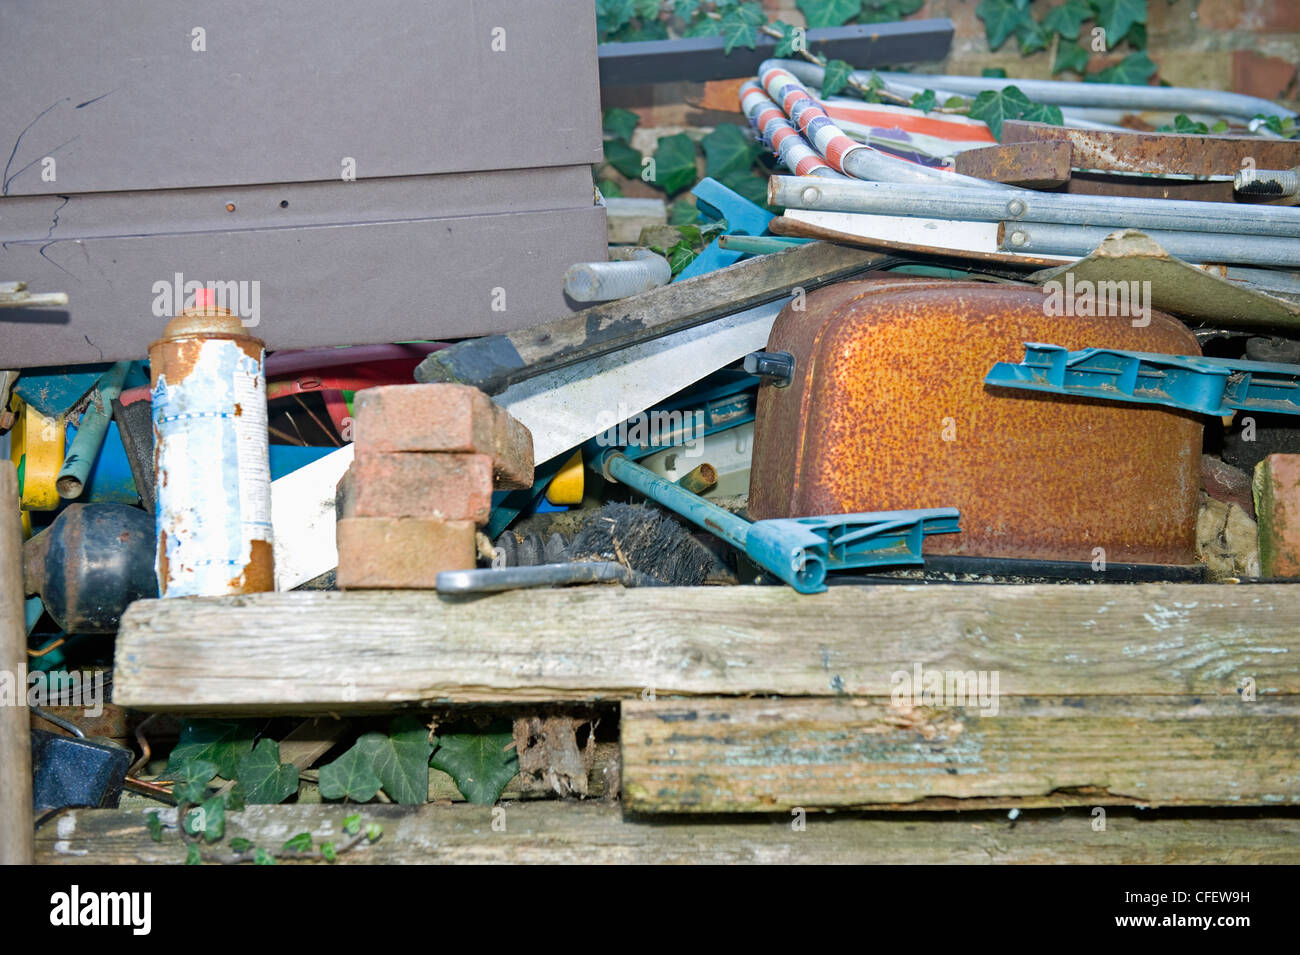 An old rusted toaster in amongst a pile of junk in a back garden. - Stock Image